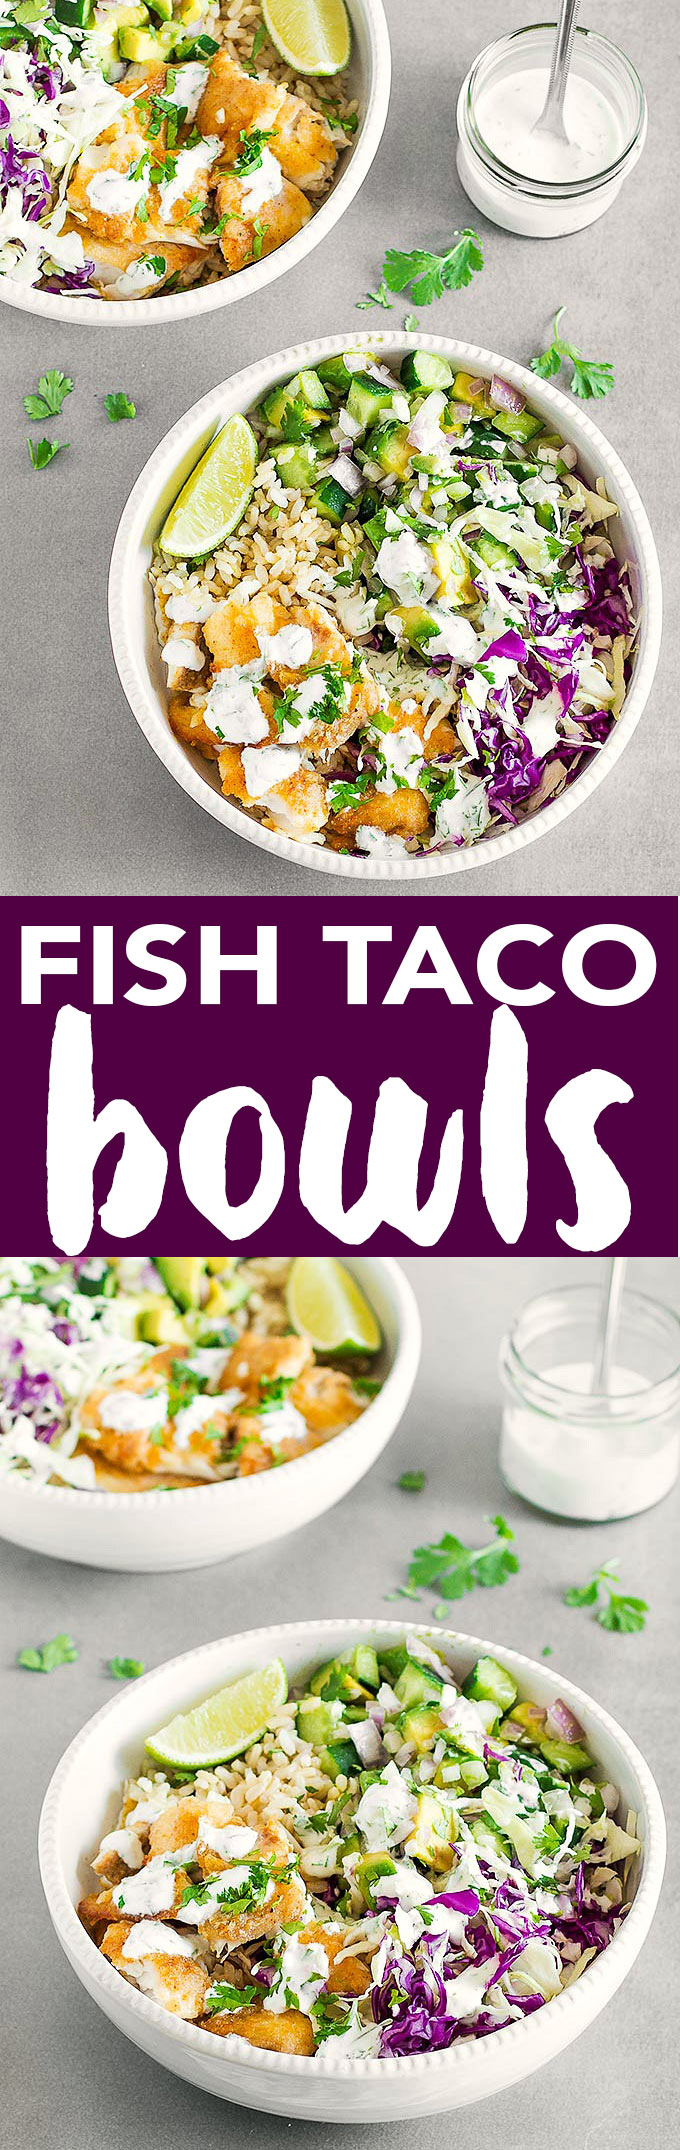 Fish taco bowls with cilantro lime crema -  a simple, filling, and  flavorful dinner ready in 20 minutes. Perfect for Cinco de Mayo!